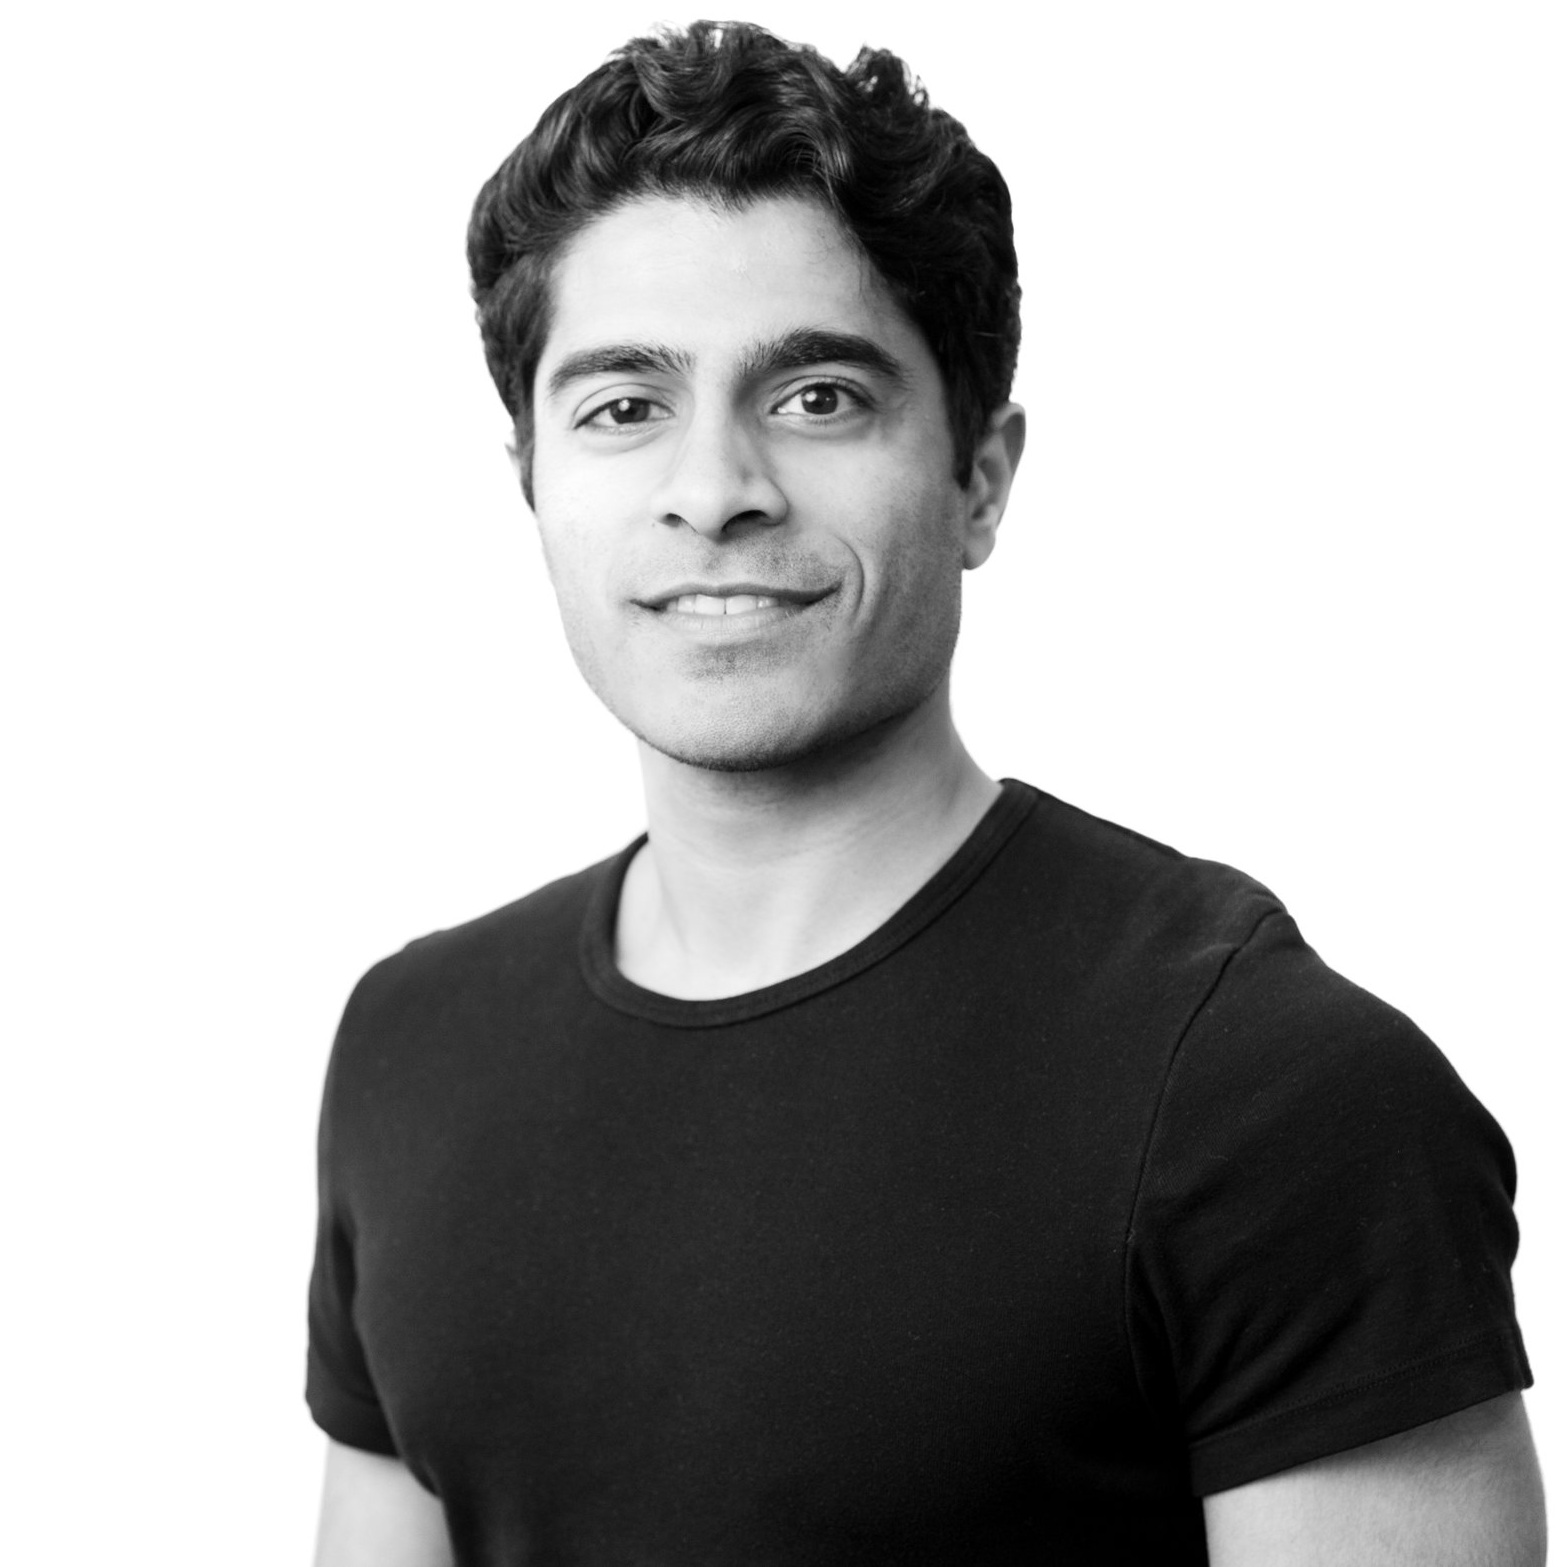 Mark Fernandes  Product Manager  Mark comes from Noble Markets, a financial technology startup where he was a product manager. Prior to Noble, he was a strategy consultant at Accenture. He is a graduate of Columbia University with dual degrees in Chemistry and Political Science.   LinkedIn